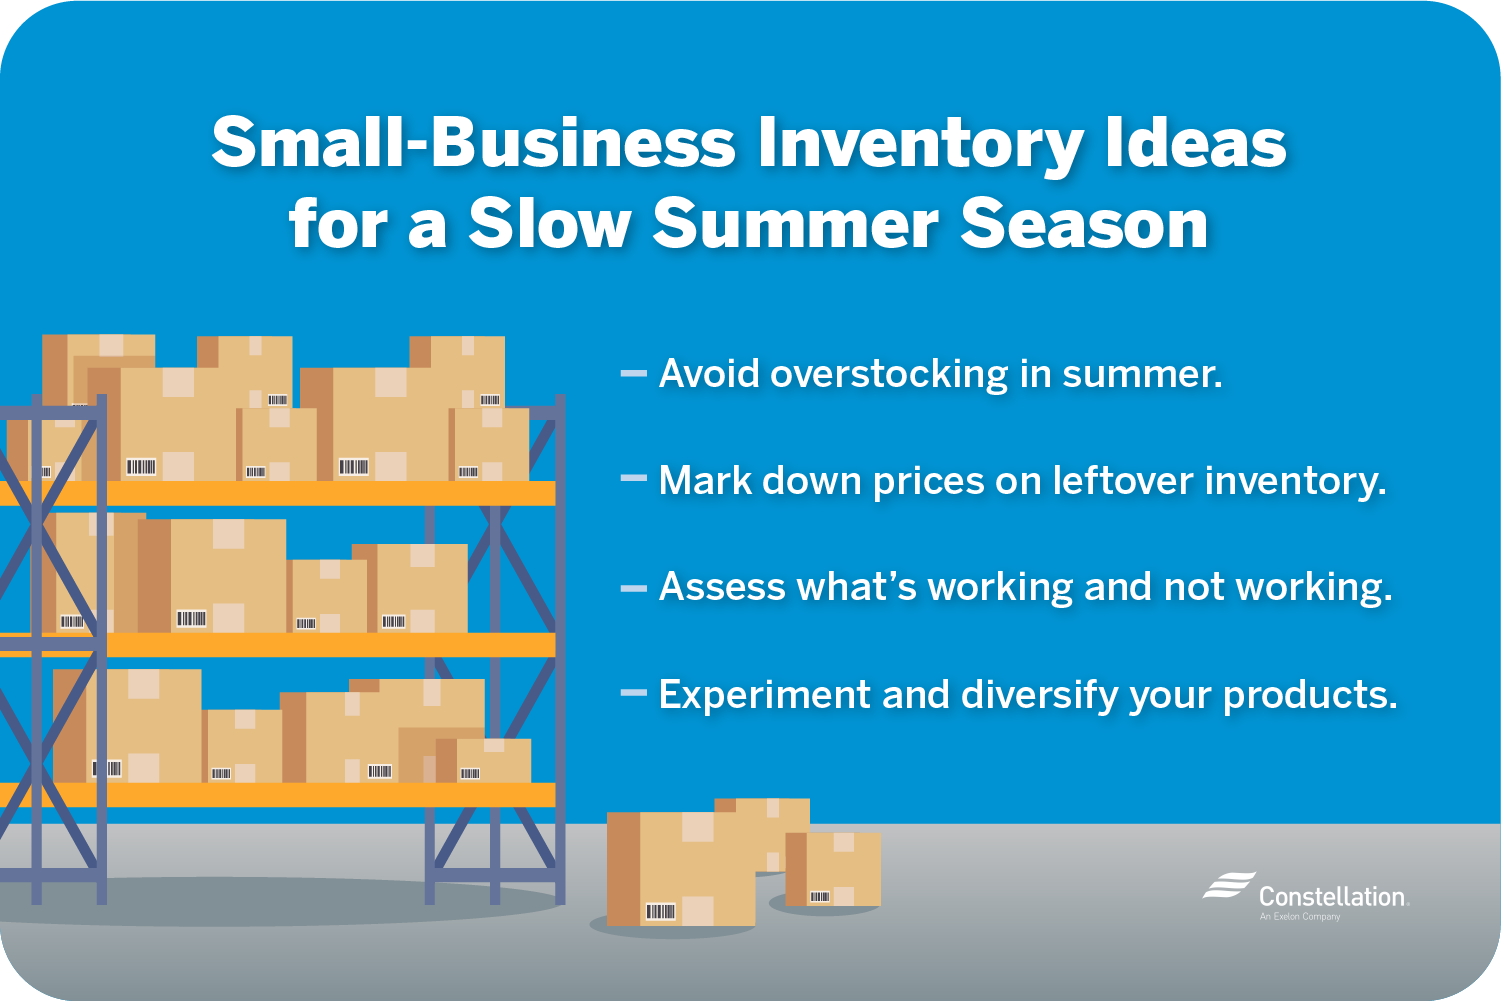 How your small business can handle inventory if summer is your slow season